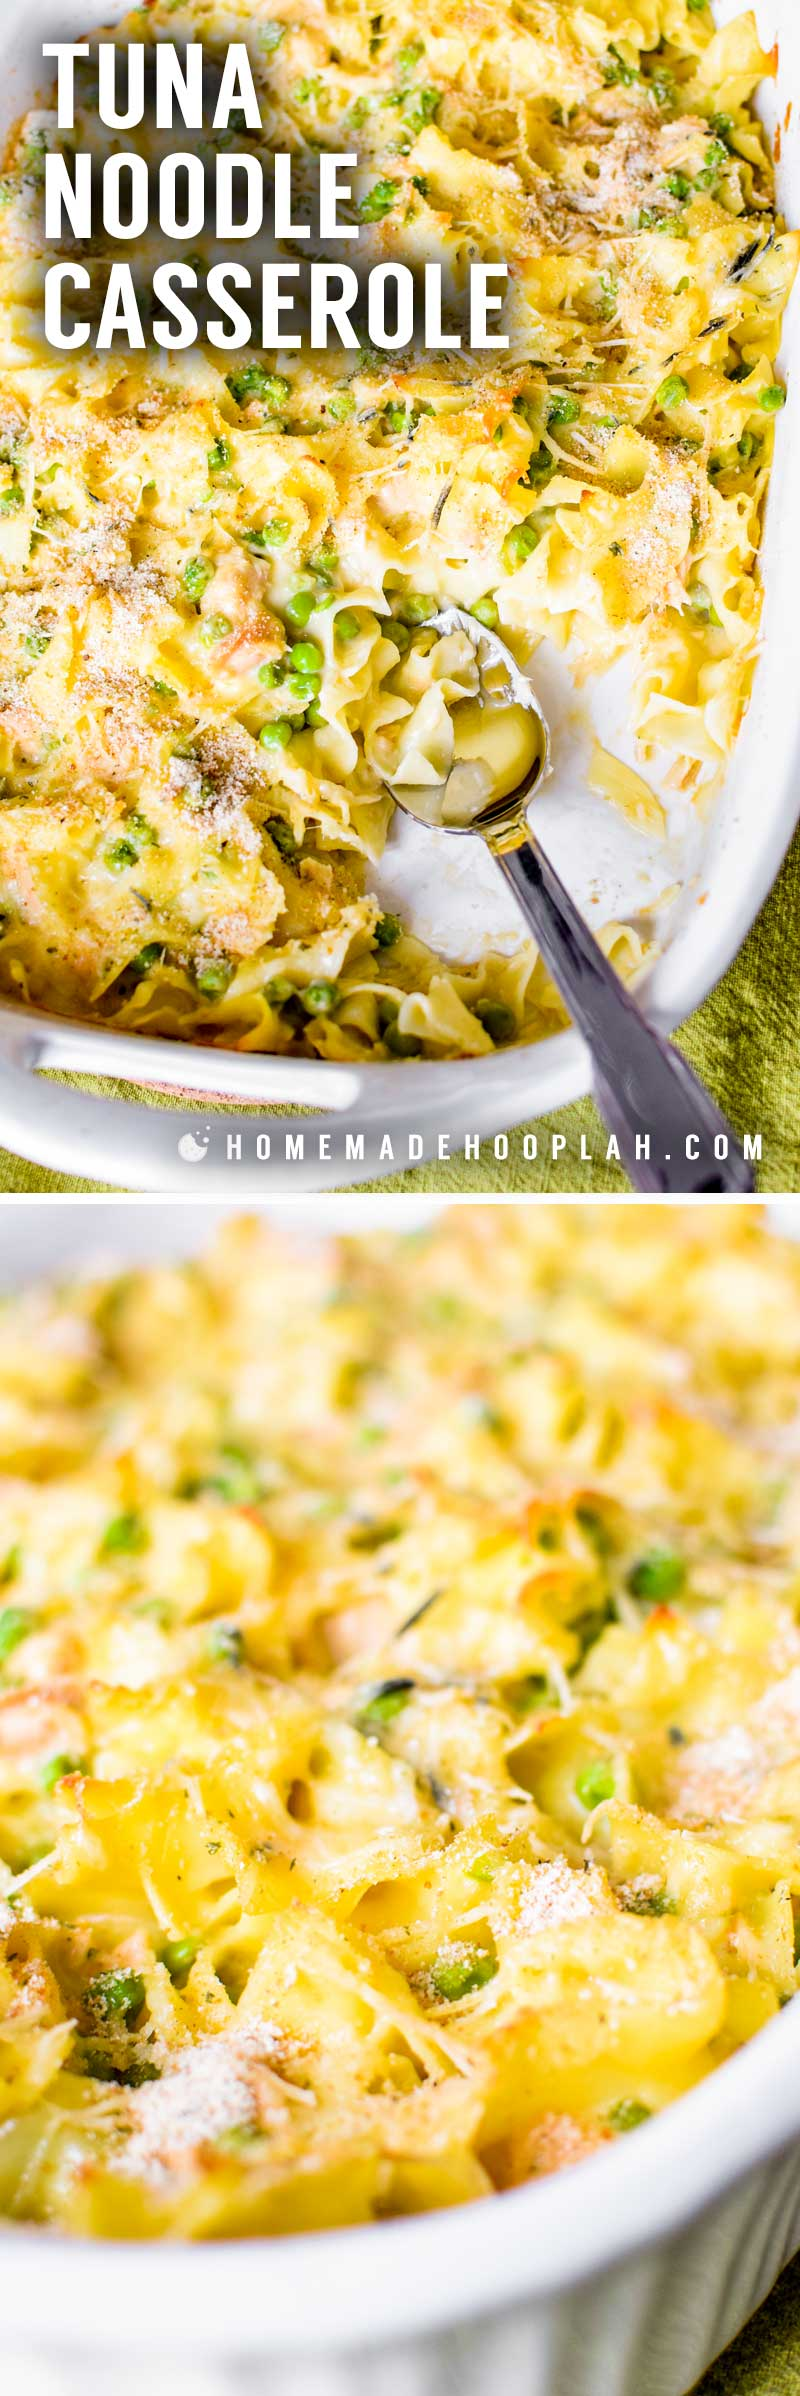 Tuna Noodle Casserole! This is a family dinner classic! Creamy and mixed cheese sauce baked with tuna, veggies, and soft egg noodles, then topped with seasoned panko bread crumbs. | HomemadeHooplah.com